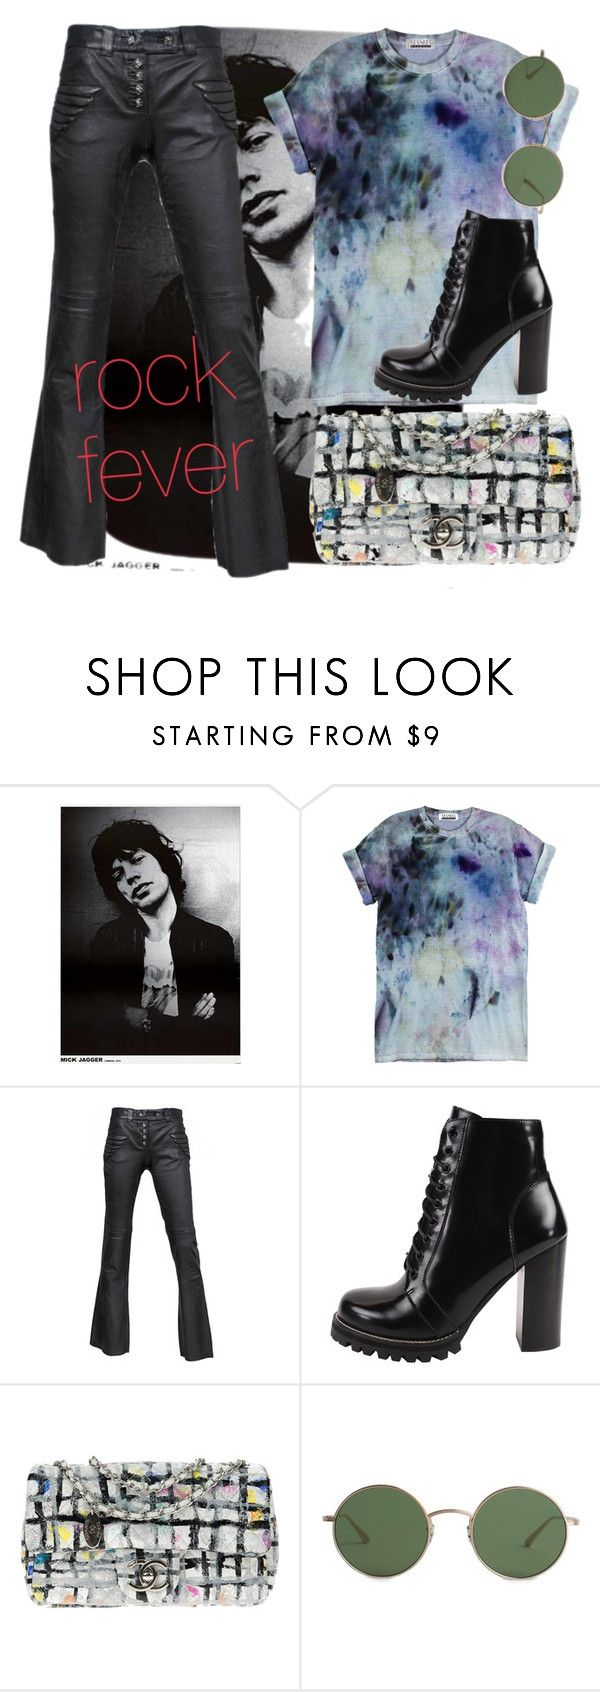 """rock fever!"" by evitaom on Polyvore featuring Jagger, Alexander McQueen, Jeffrey Campbell, Chanel and The Row"